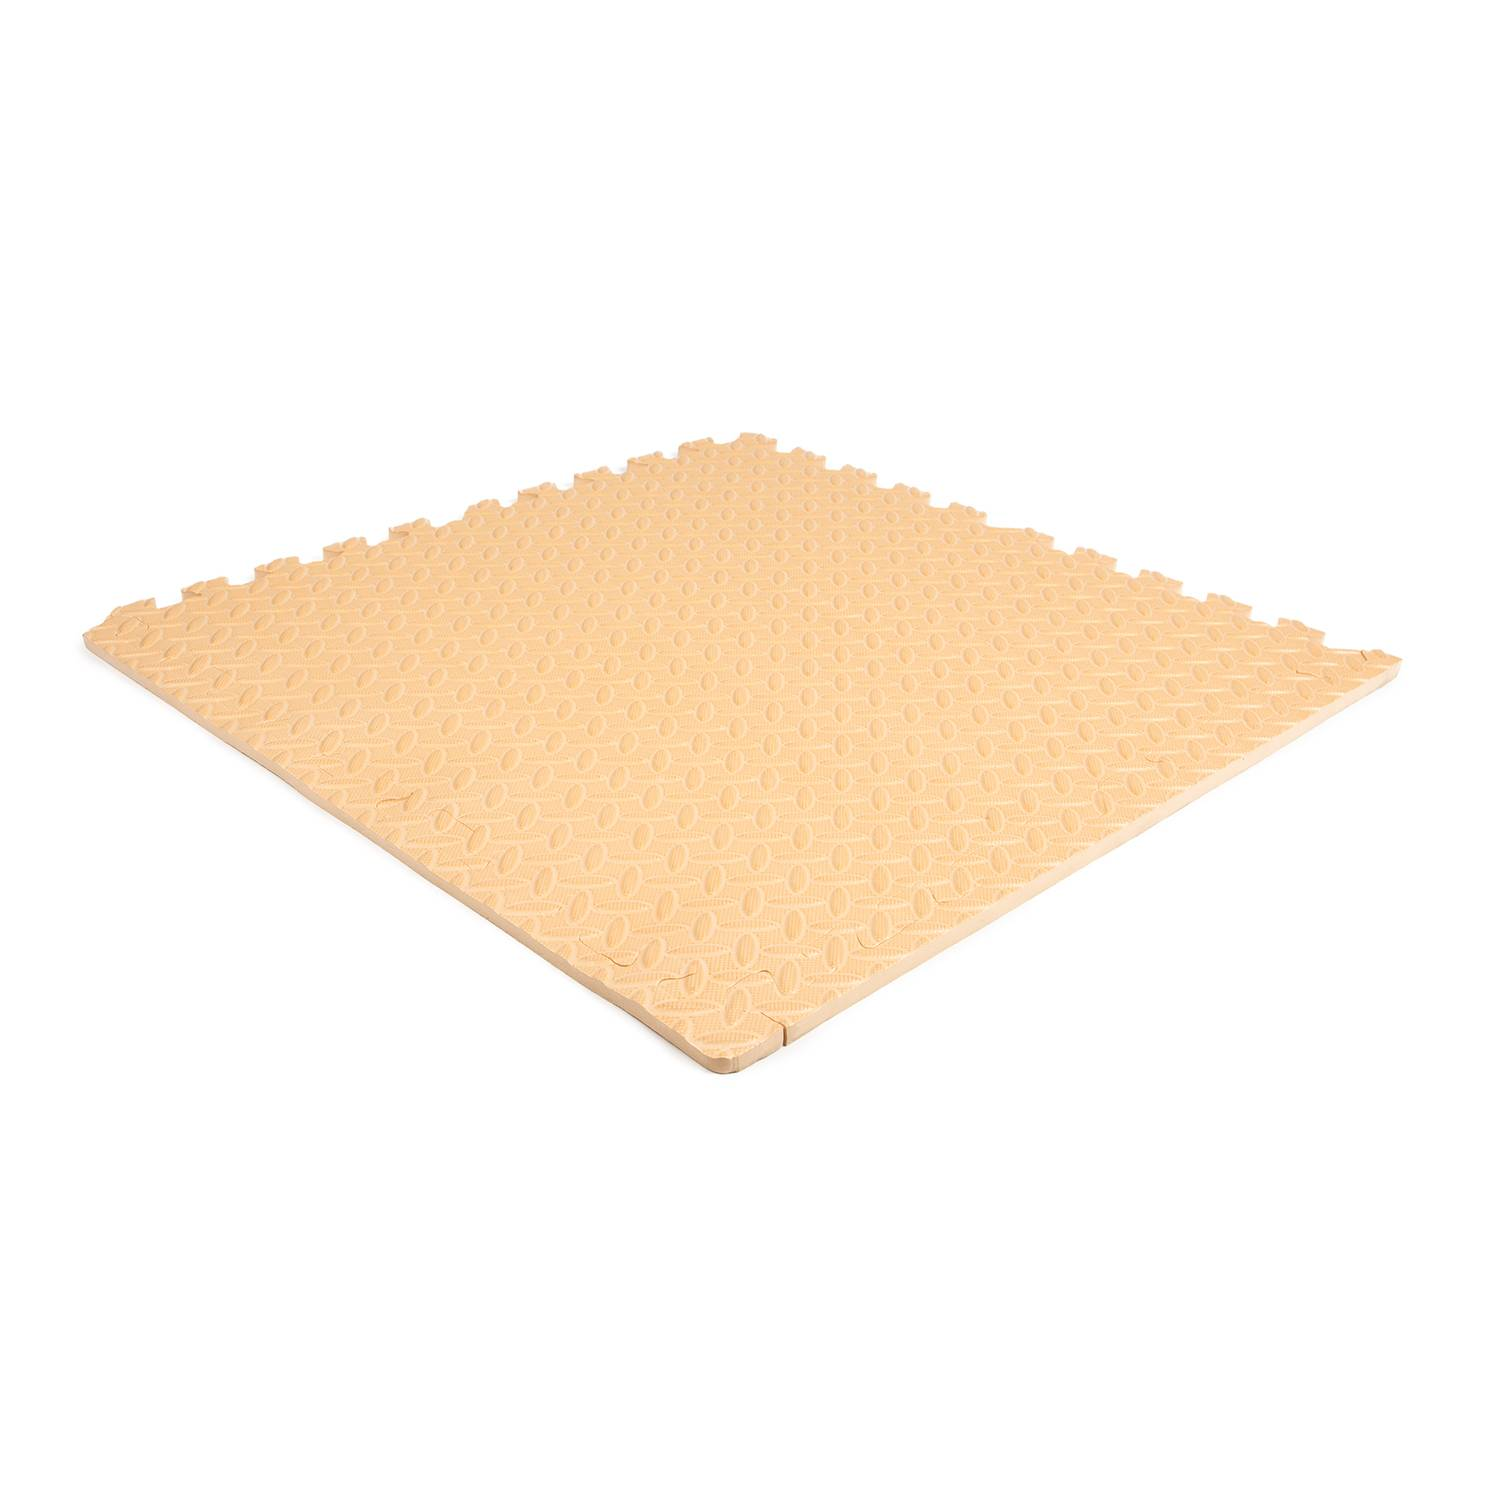 Planet Caoutchouc Dalle en mousse checker crème 620x620x12mm (4 dalles + 8 coins/bords)